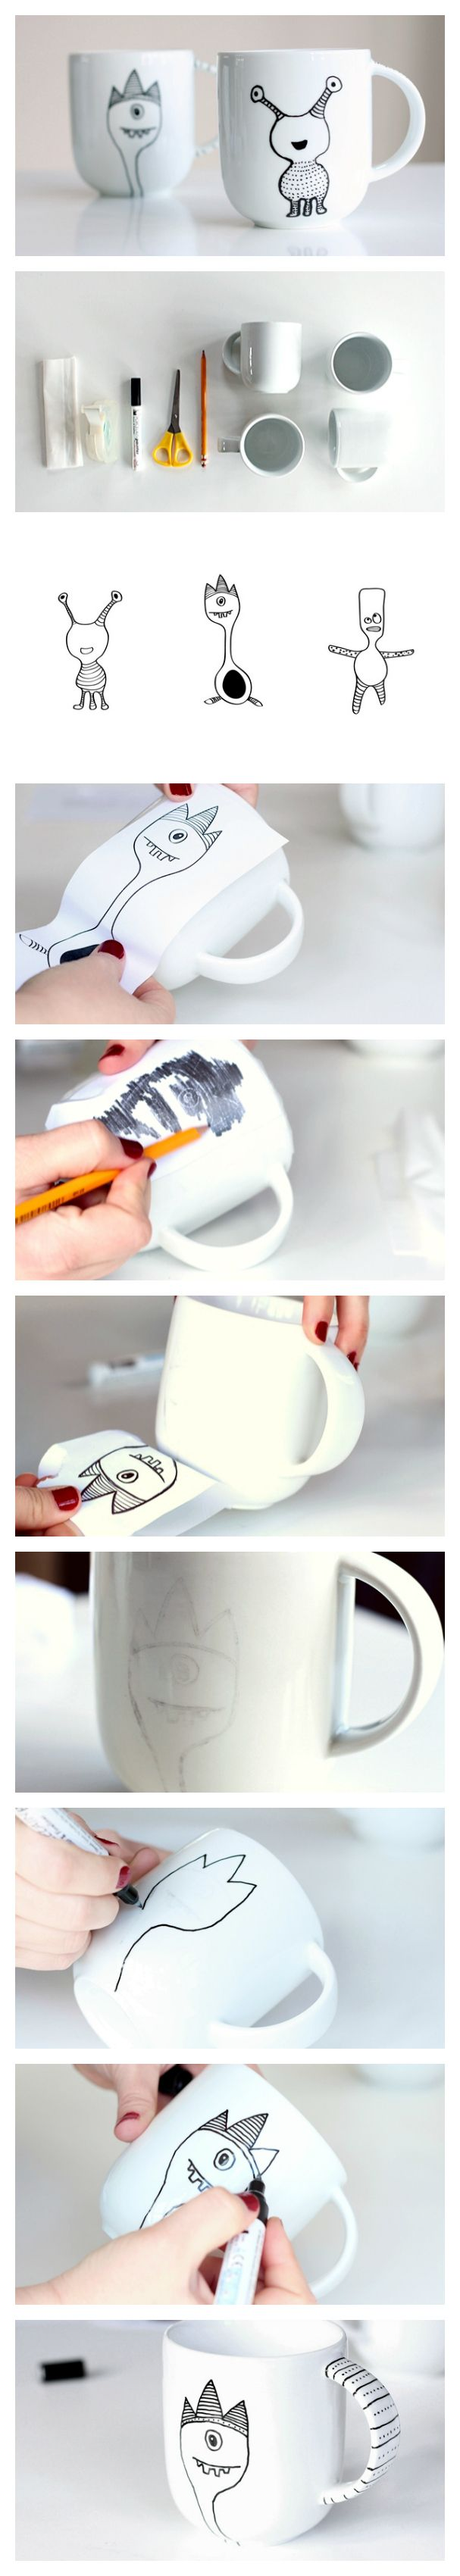 How to decorate a coffee mug with a porcelain marker.